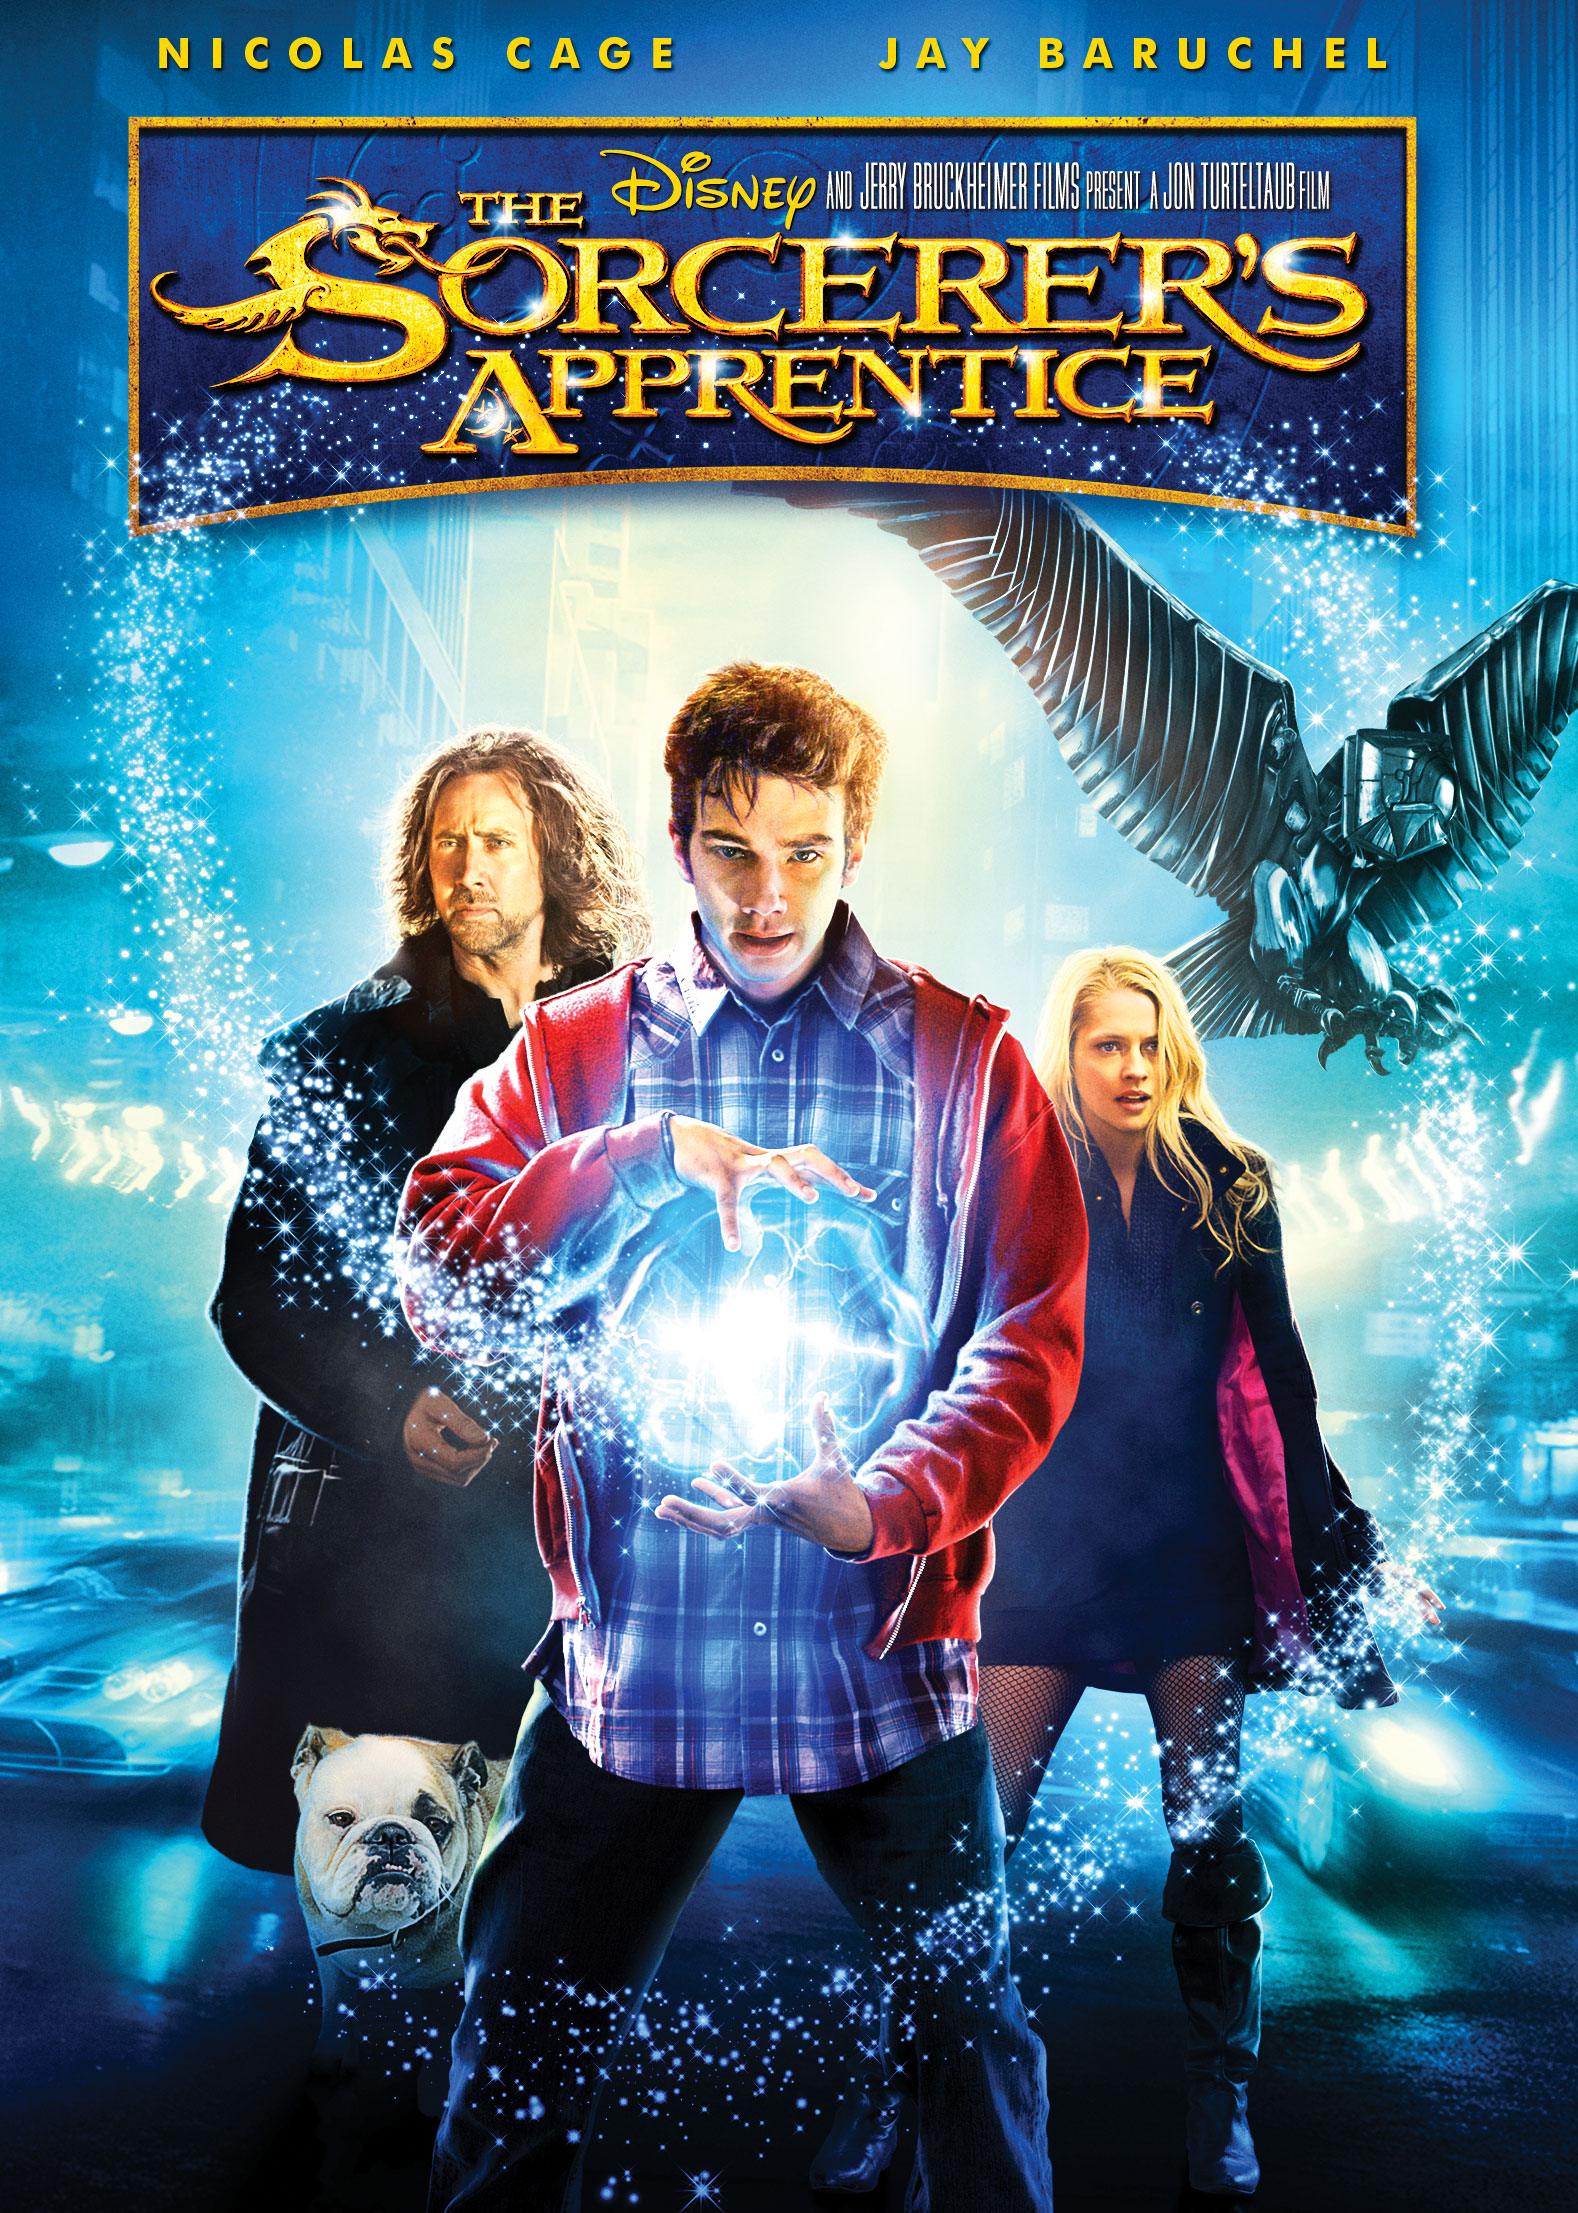 The Wizards Apprentice